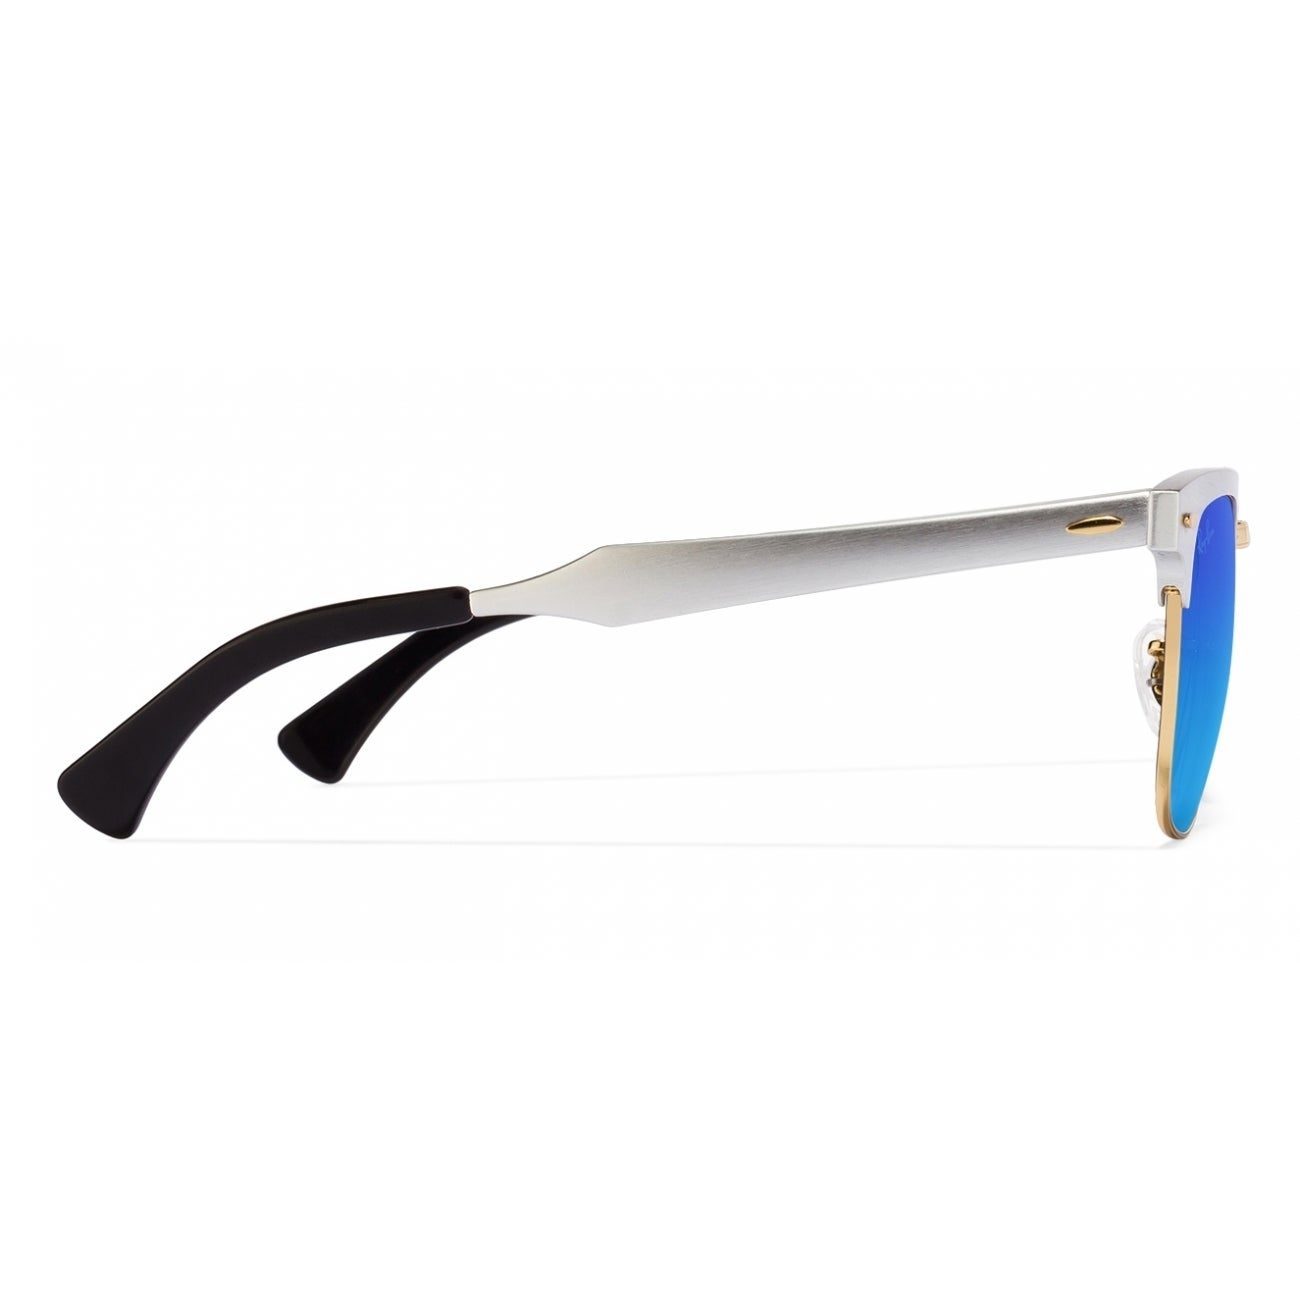 1f54487112 Shop Ray-Ban Unisex RB3507 137 7Q Clubmaster Silver Frame Blue Gradient  Flash 51 mm Lens Sunglasses - Free Shipping Today - Overstock - 16740929